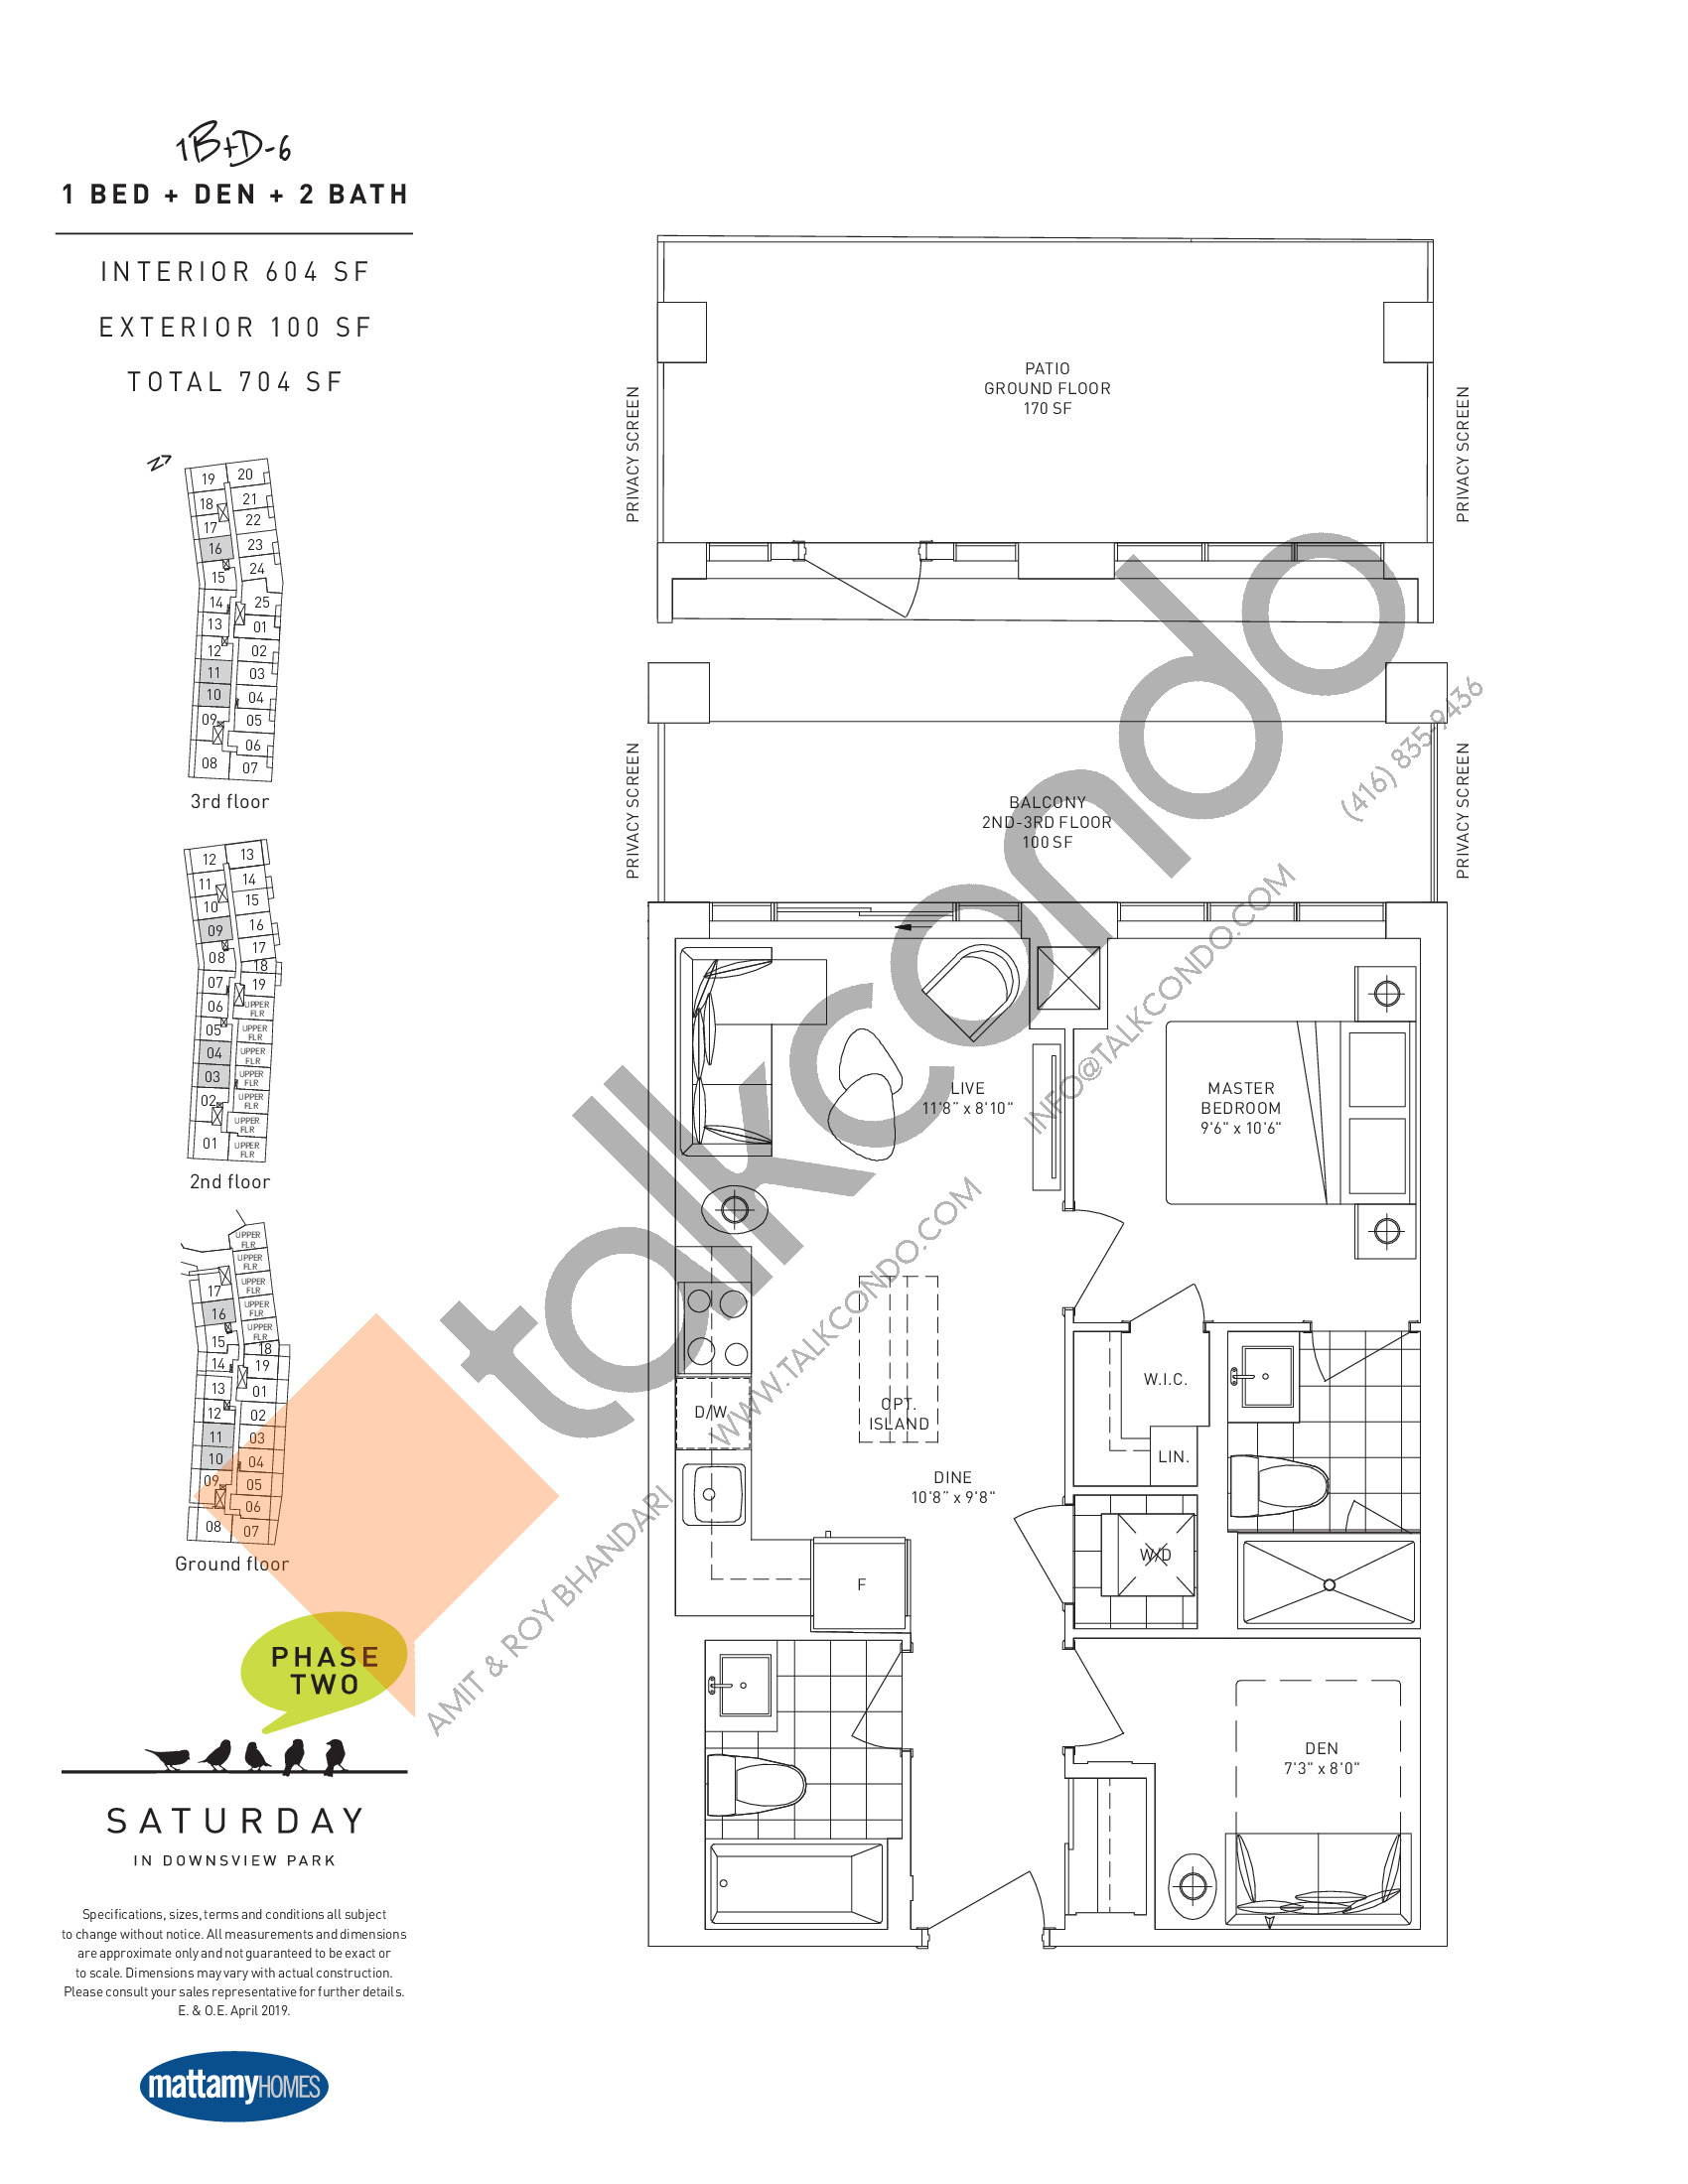 1B+D-6 Floor Plan at Saturday in Downsview Park Phase 2 Condos - 604 sq.ft